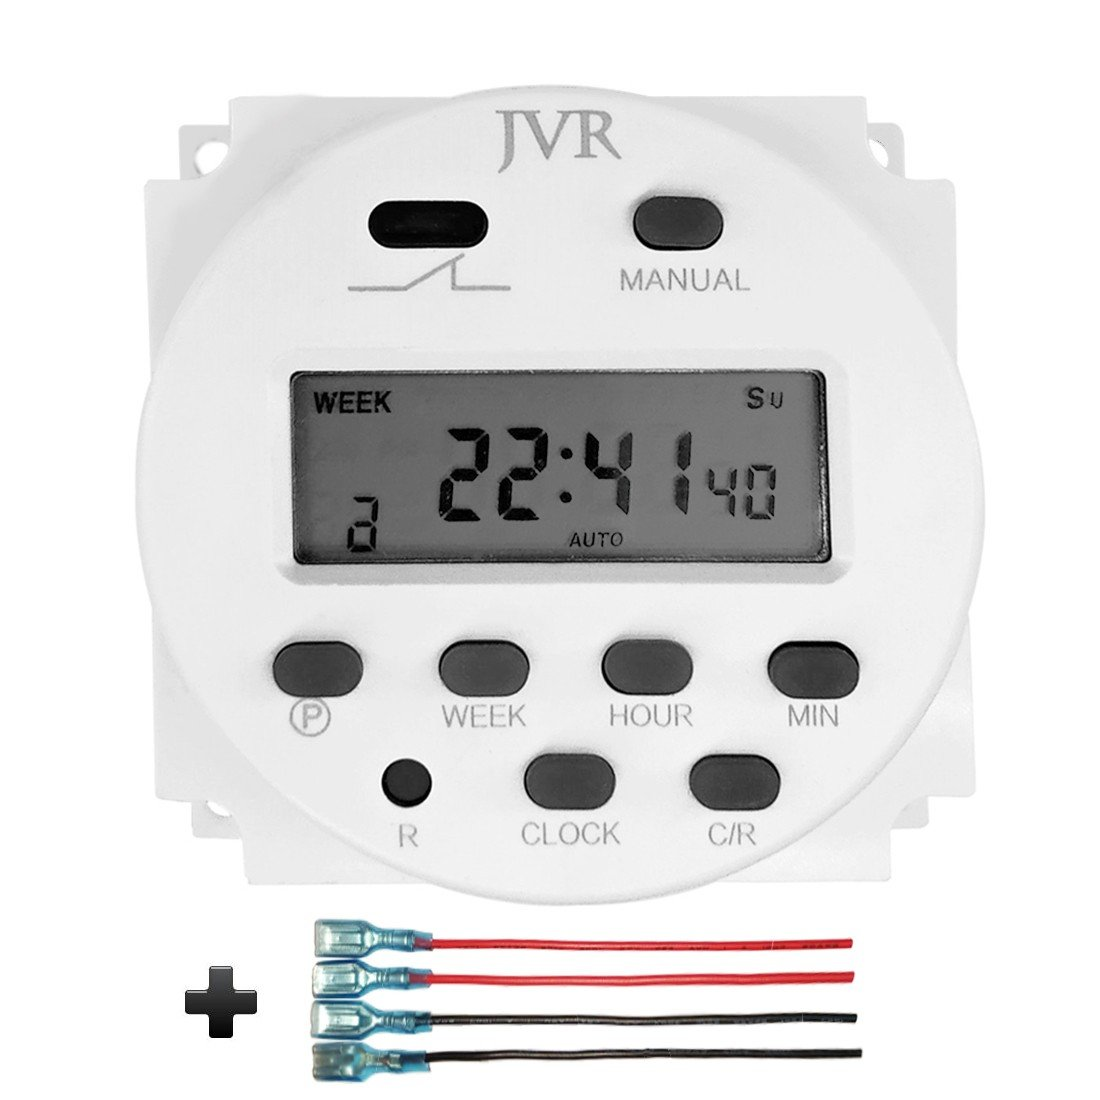 JVR 12V Timer Switch for Solar Lights Chicken Coop Door, Digital Programmable Time DC/AC 12 Volt Battery Powered with 4 Female Wire Terminal Cables